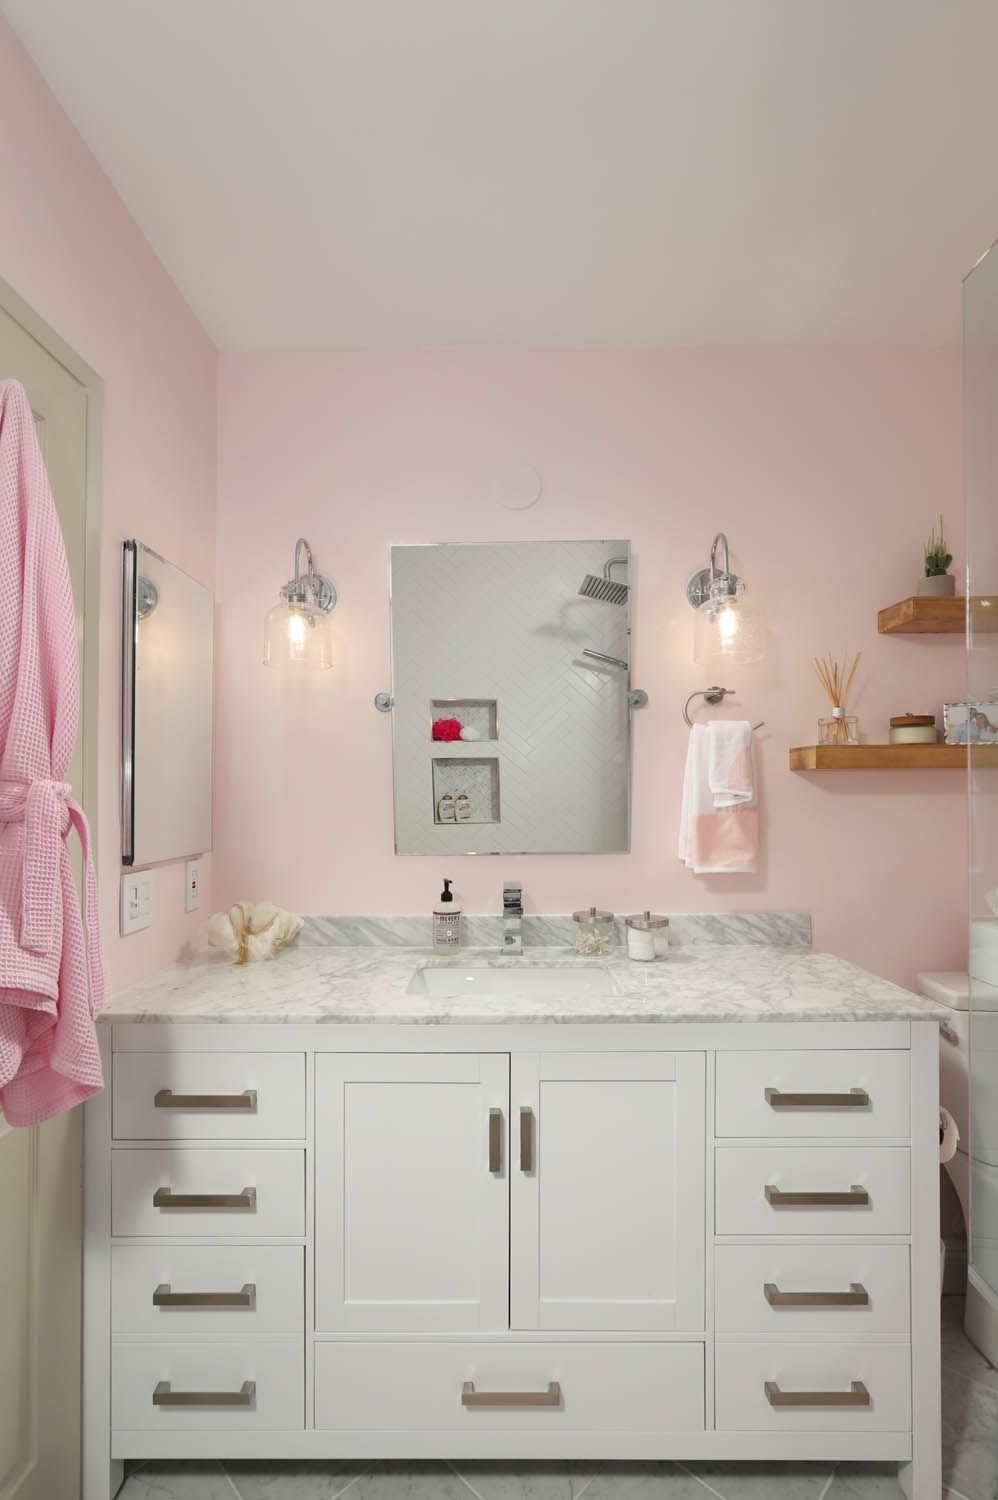 Pretty in Pink - Bathroom Remodel